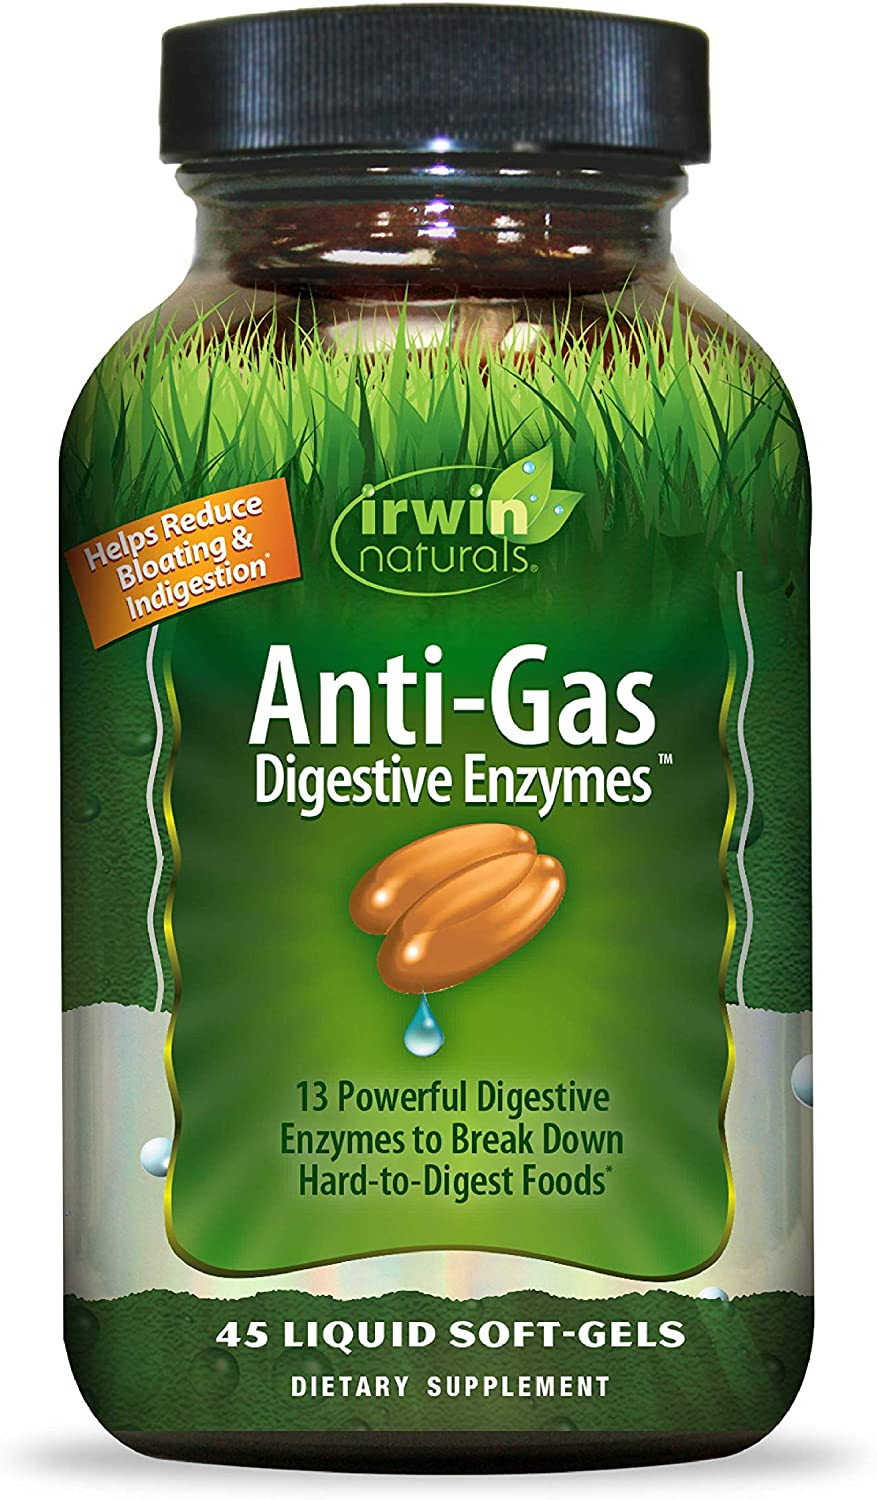 Irwin Naturals Anti-Gas Digestive Enzymes, Break Down Hard-to-Digest Food & Reduce Indigestion, 45 Liquid Softgels